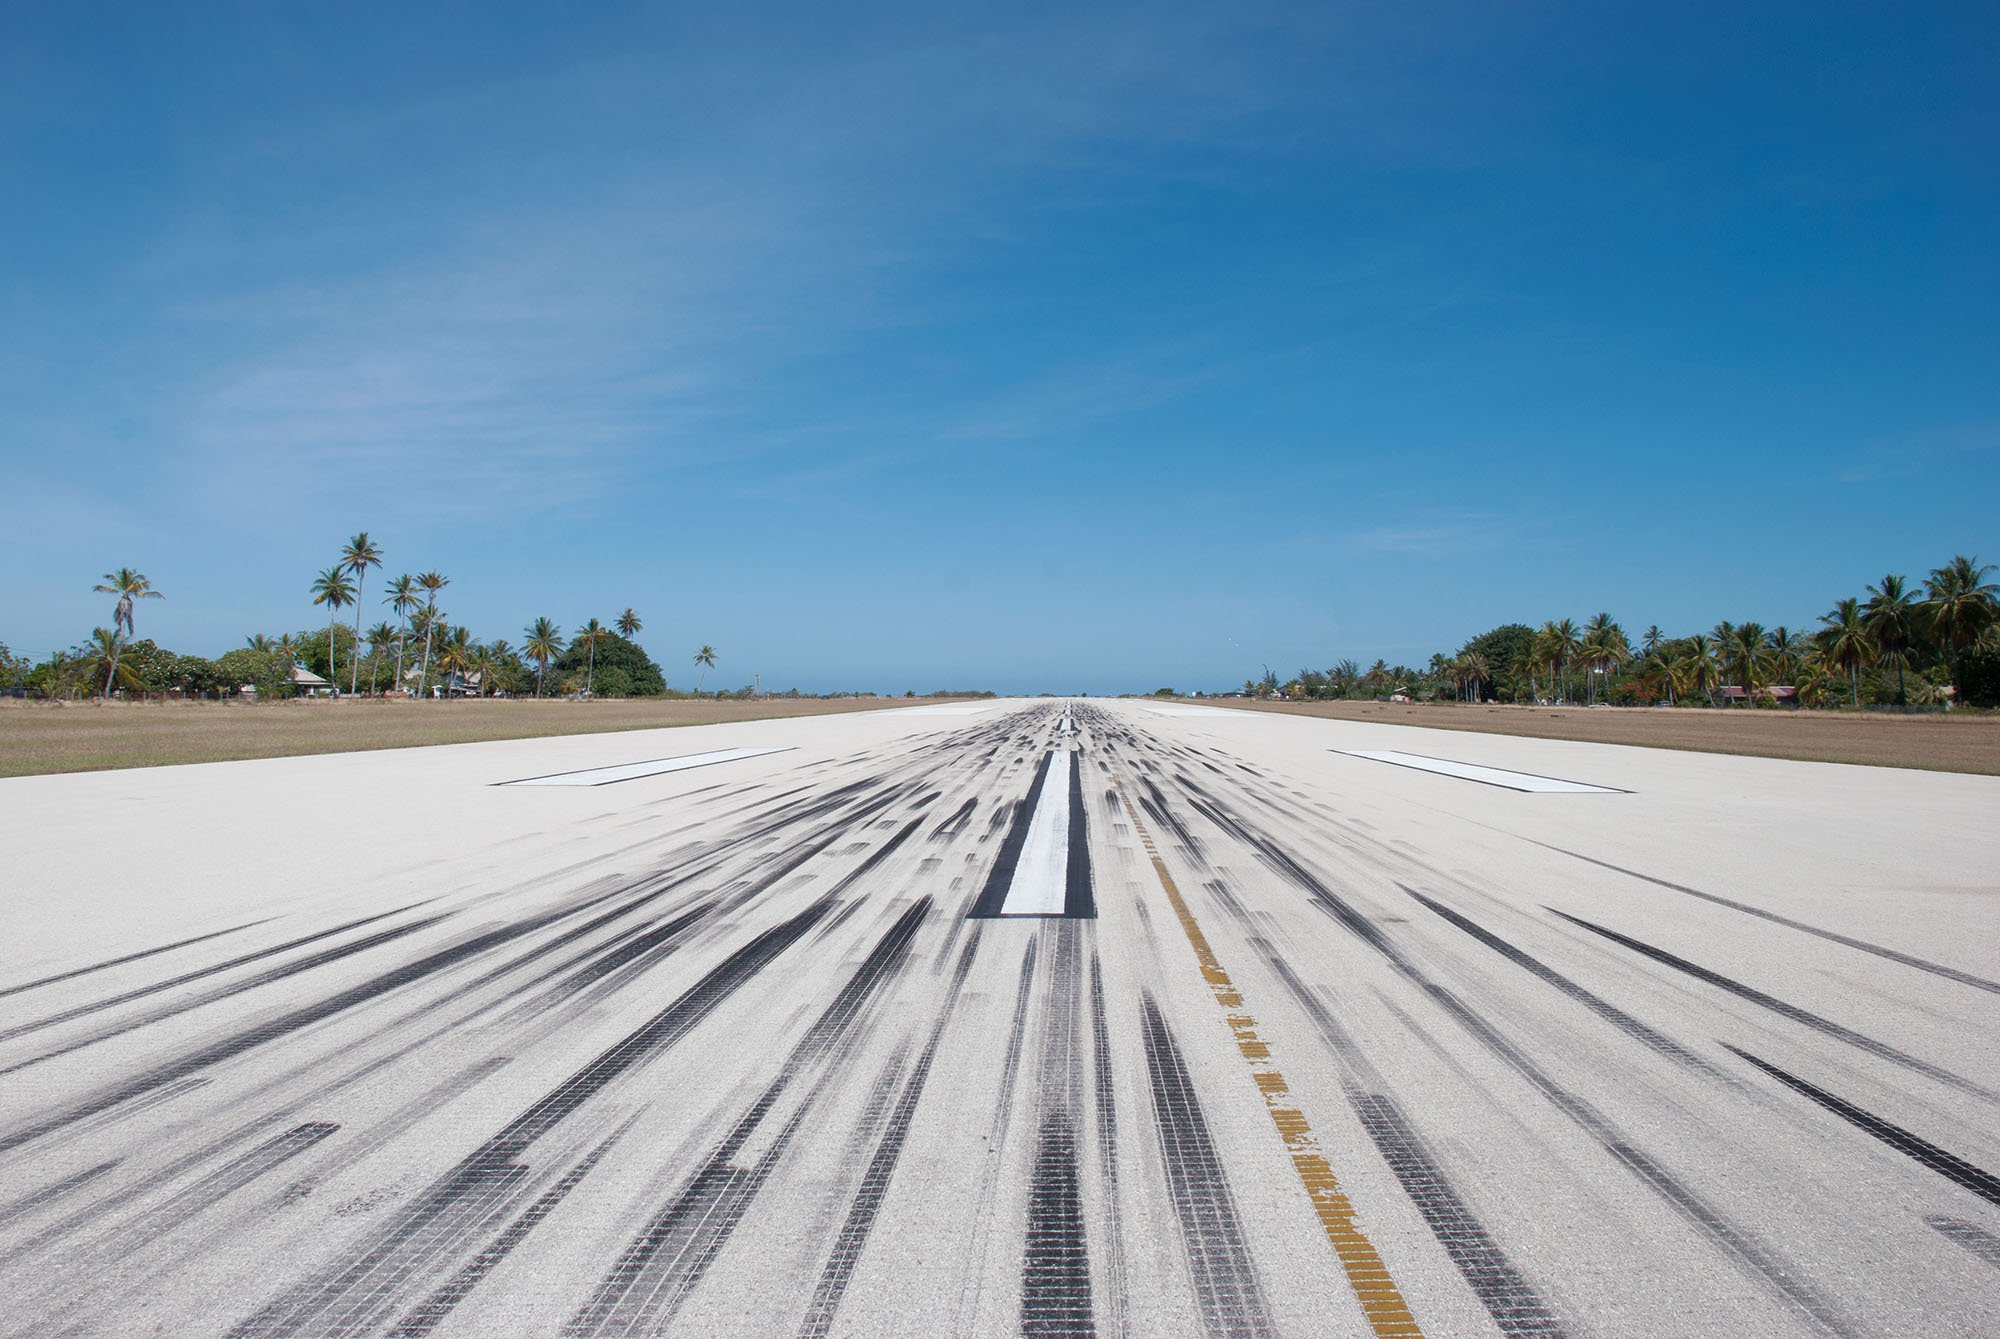 Nicholas Mangan, Tarmac at Nauru International Airport, 2009.